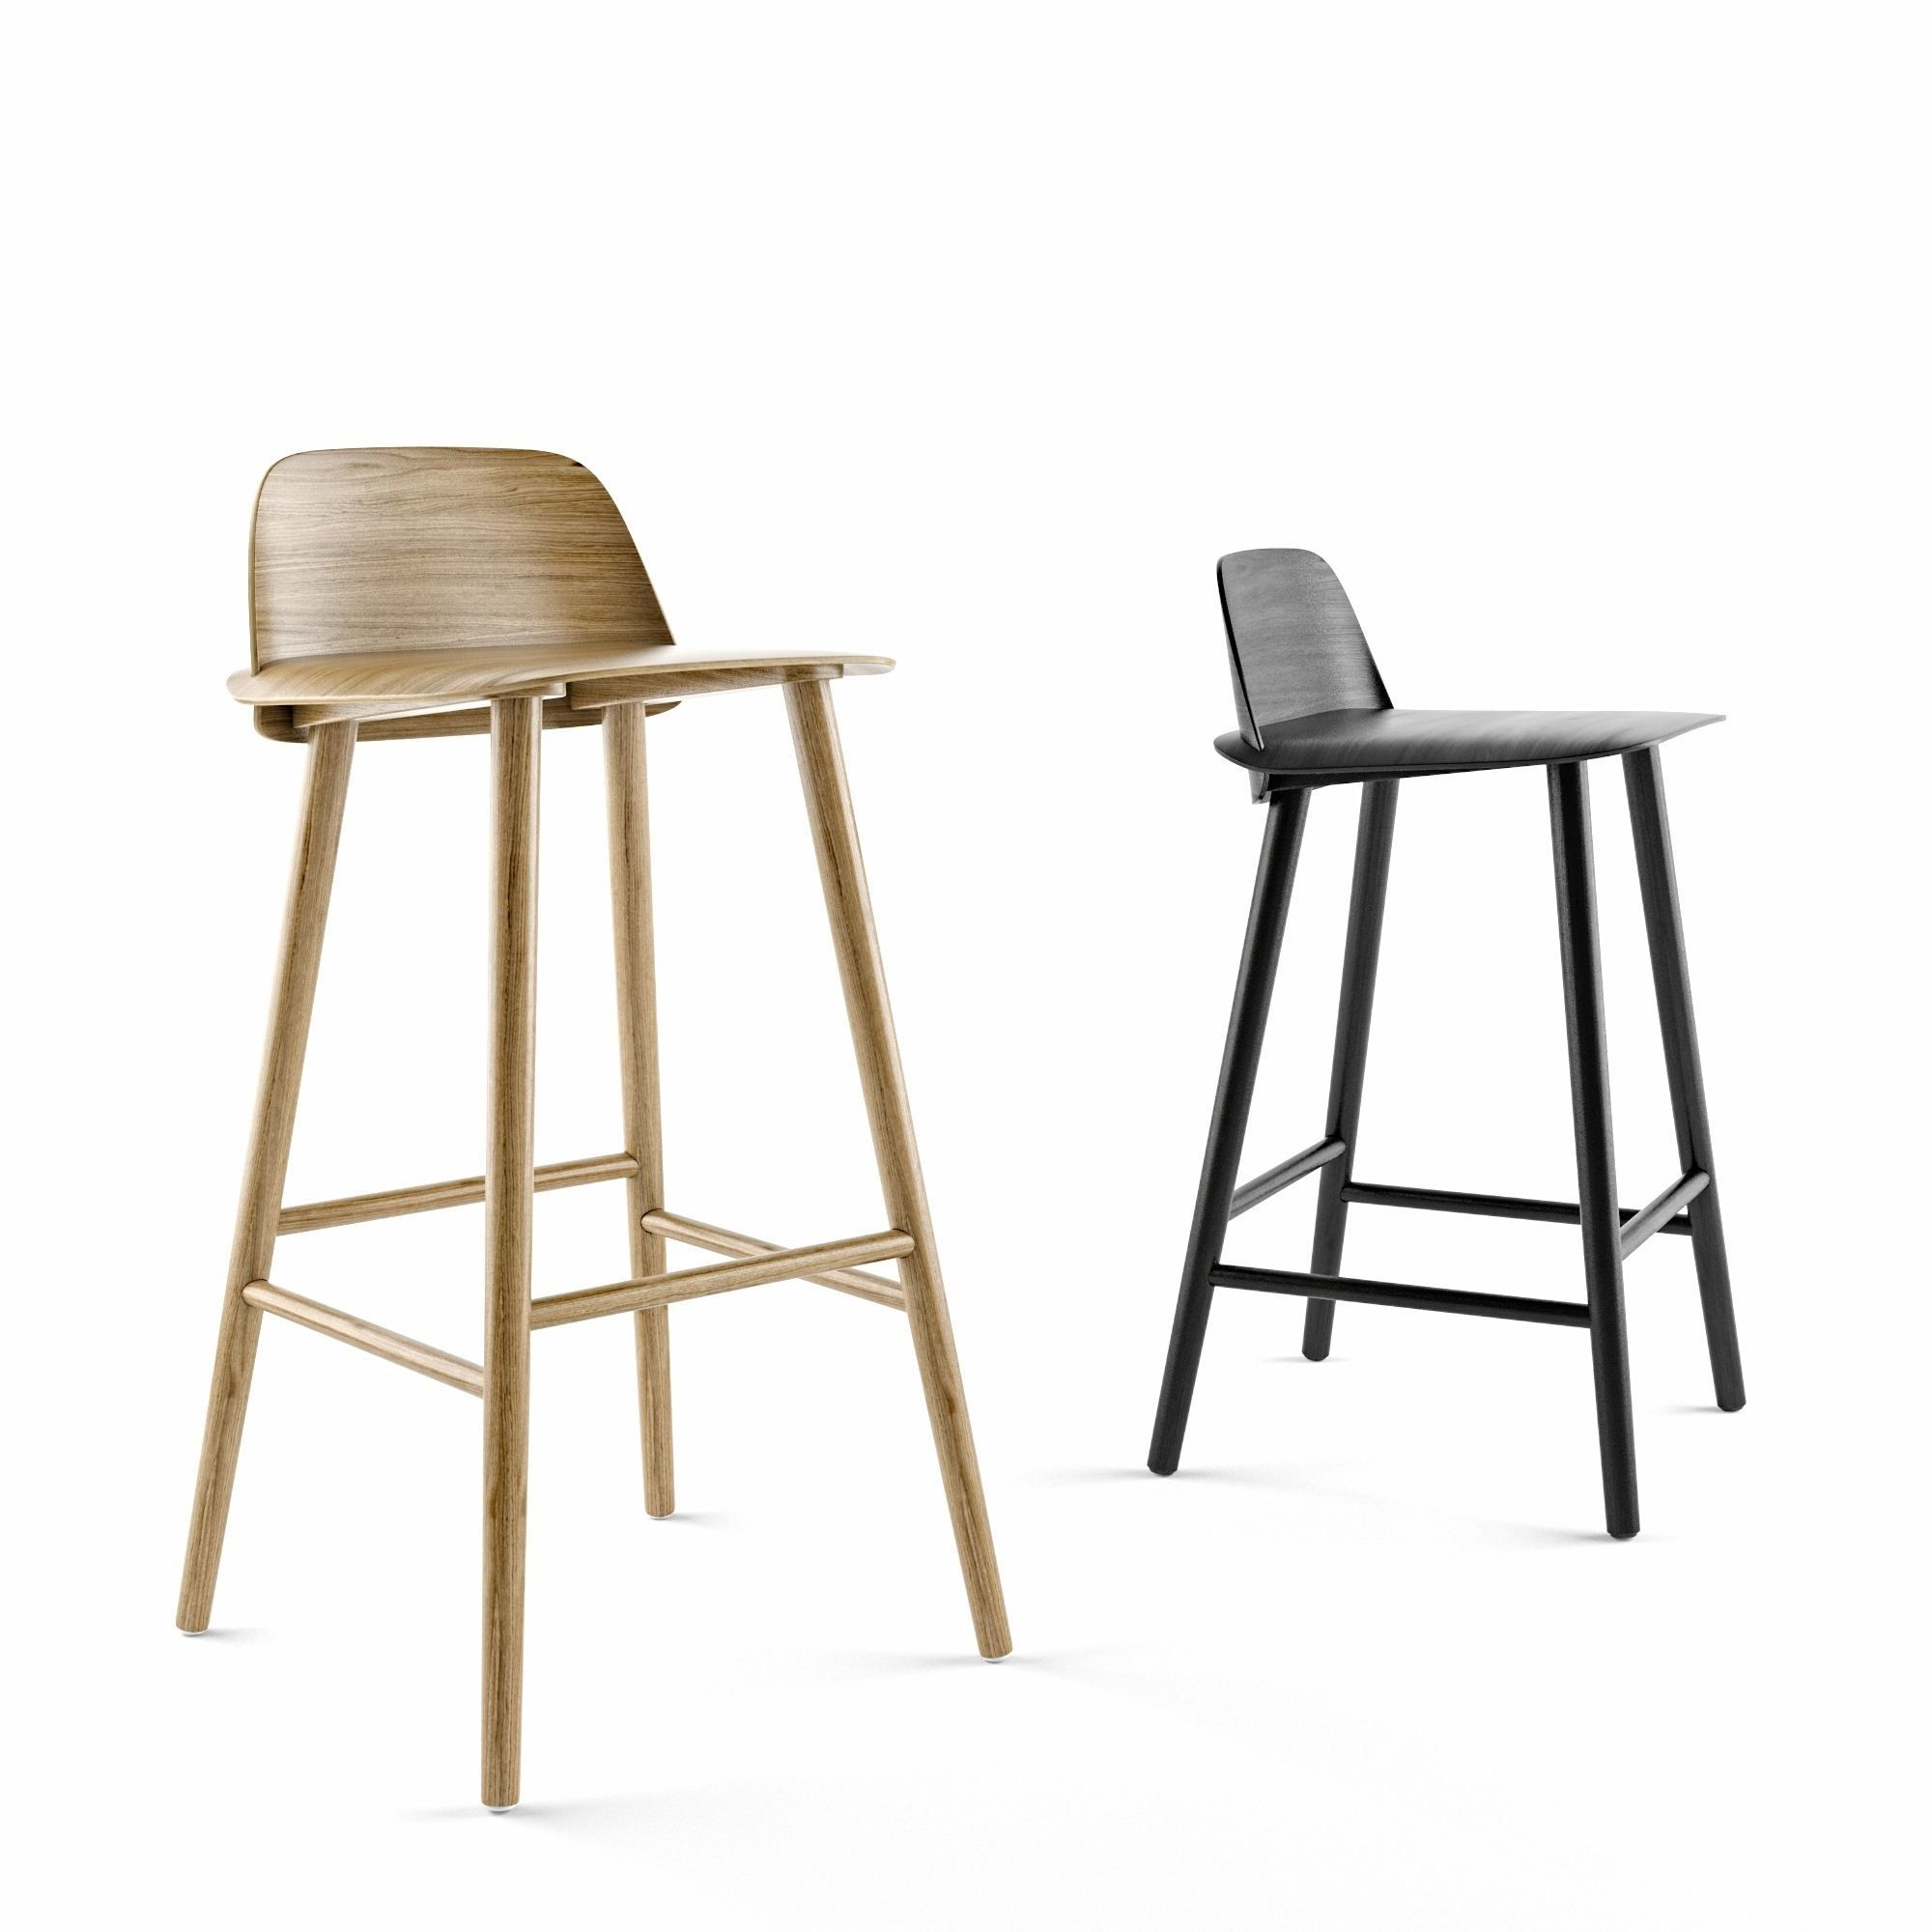 MUUTO Nerd Counter stool and Bar Stool